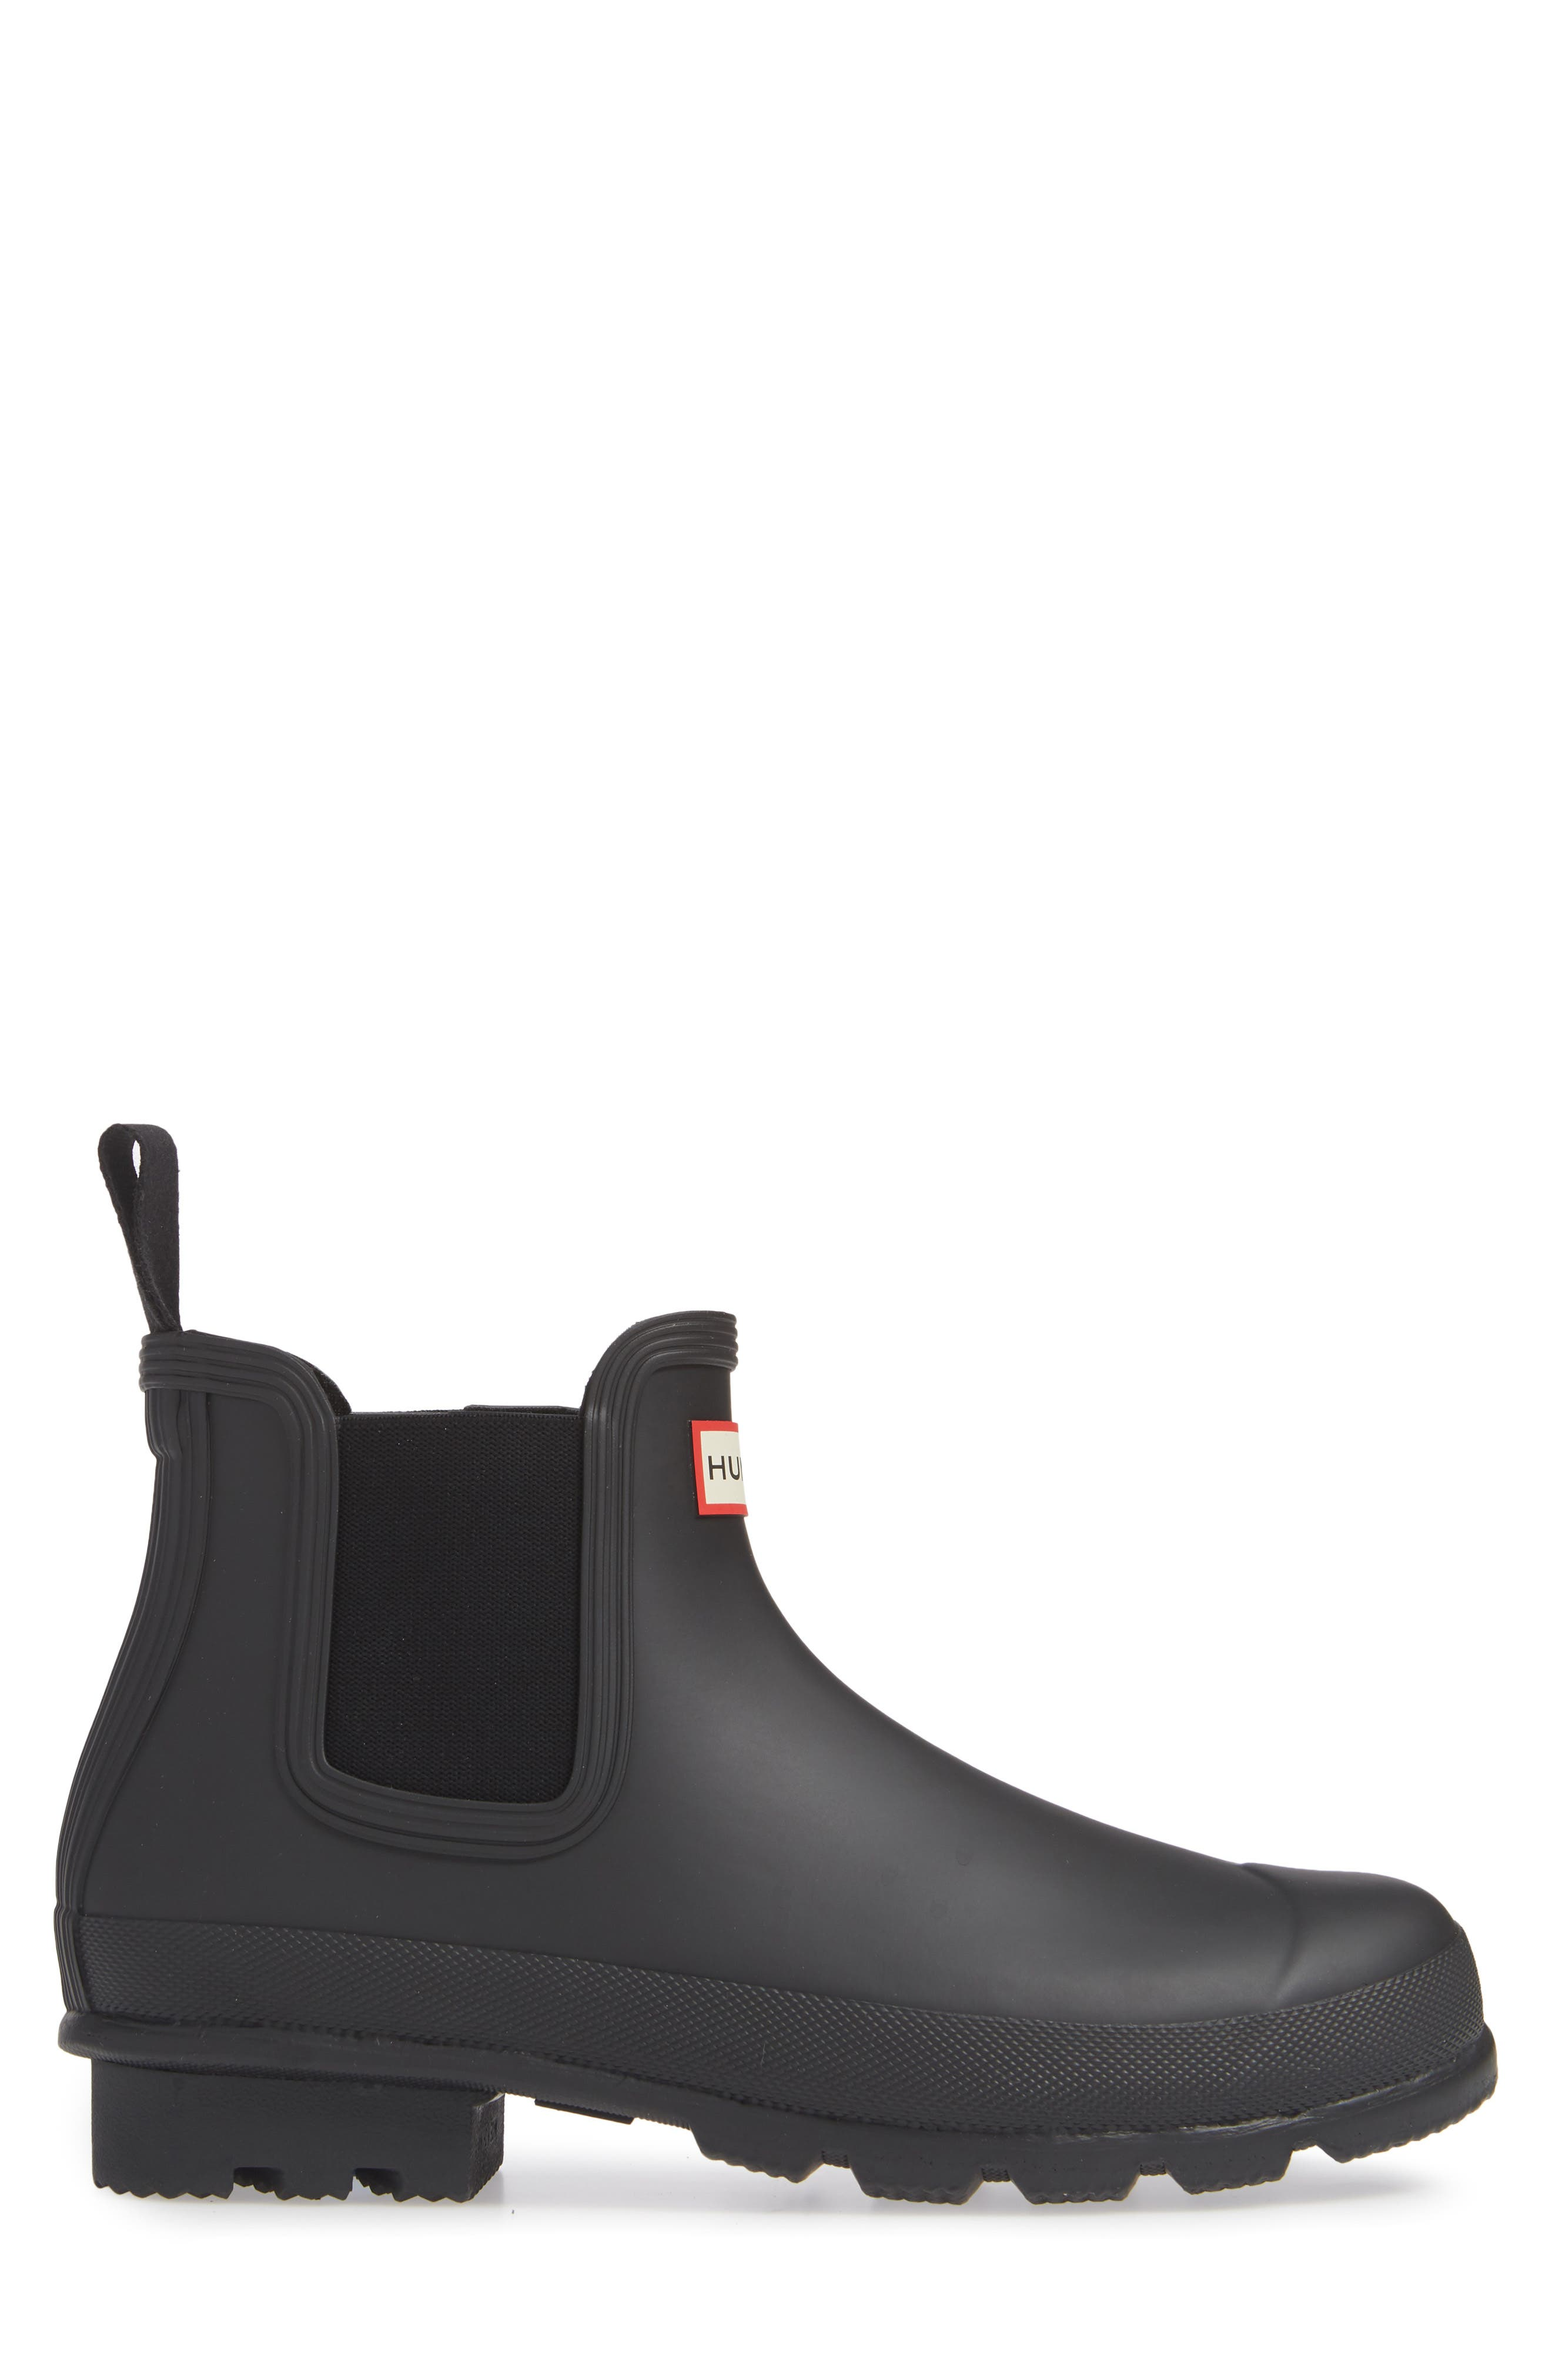 HUNTER,                             'Original' Waterproof Chelsea Rain Boot,                             Alternate thumbnail 3, color,                             002